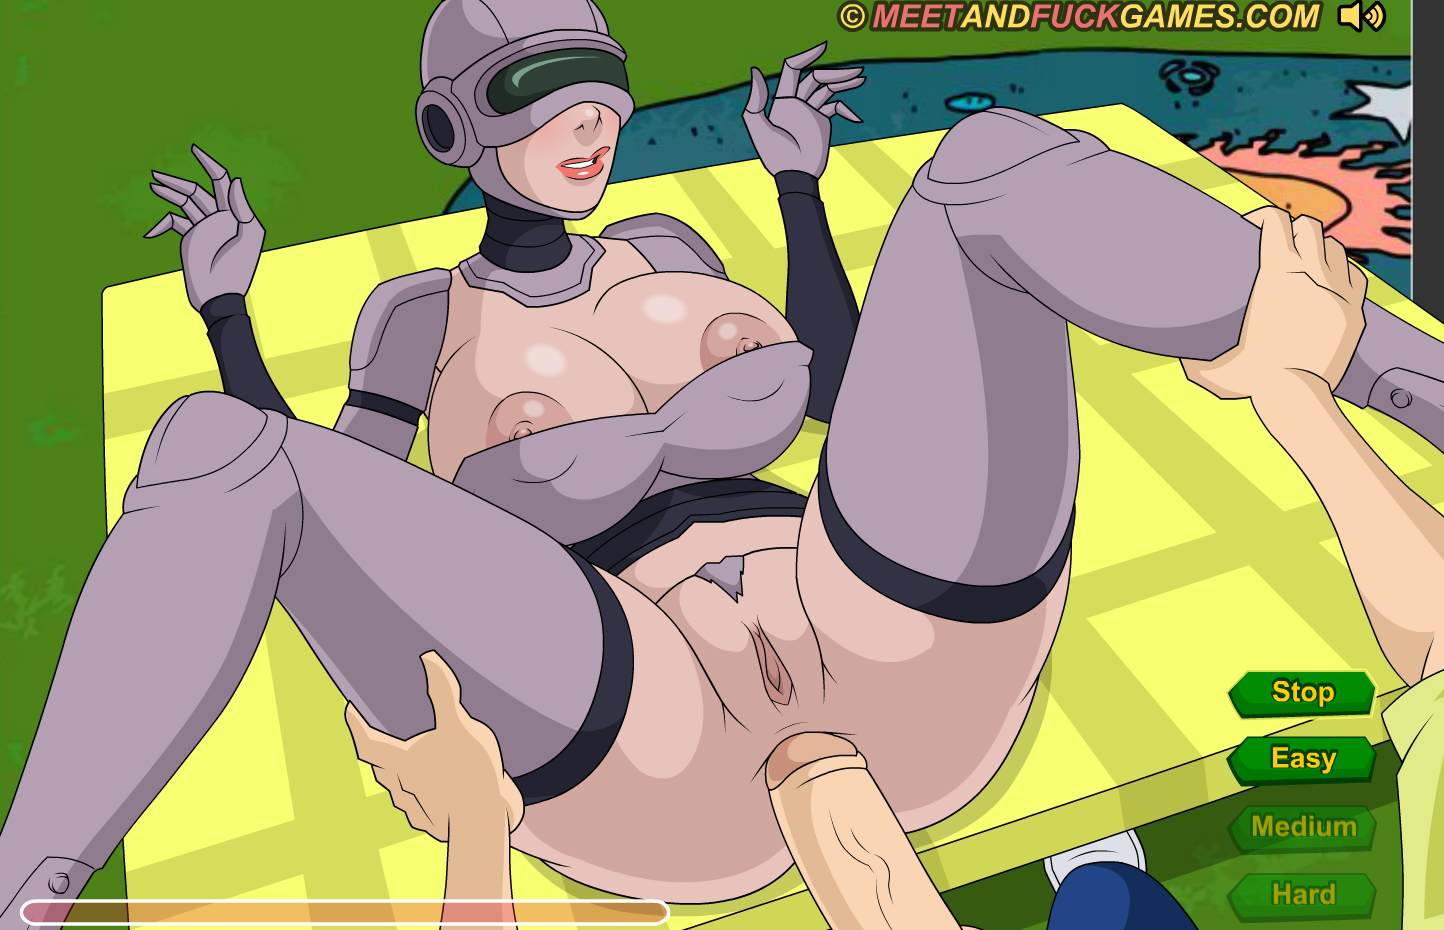 Game Hentai Flash rocky and farty hentai flash sex game android/browser meet